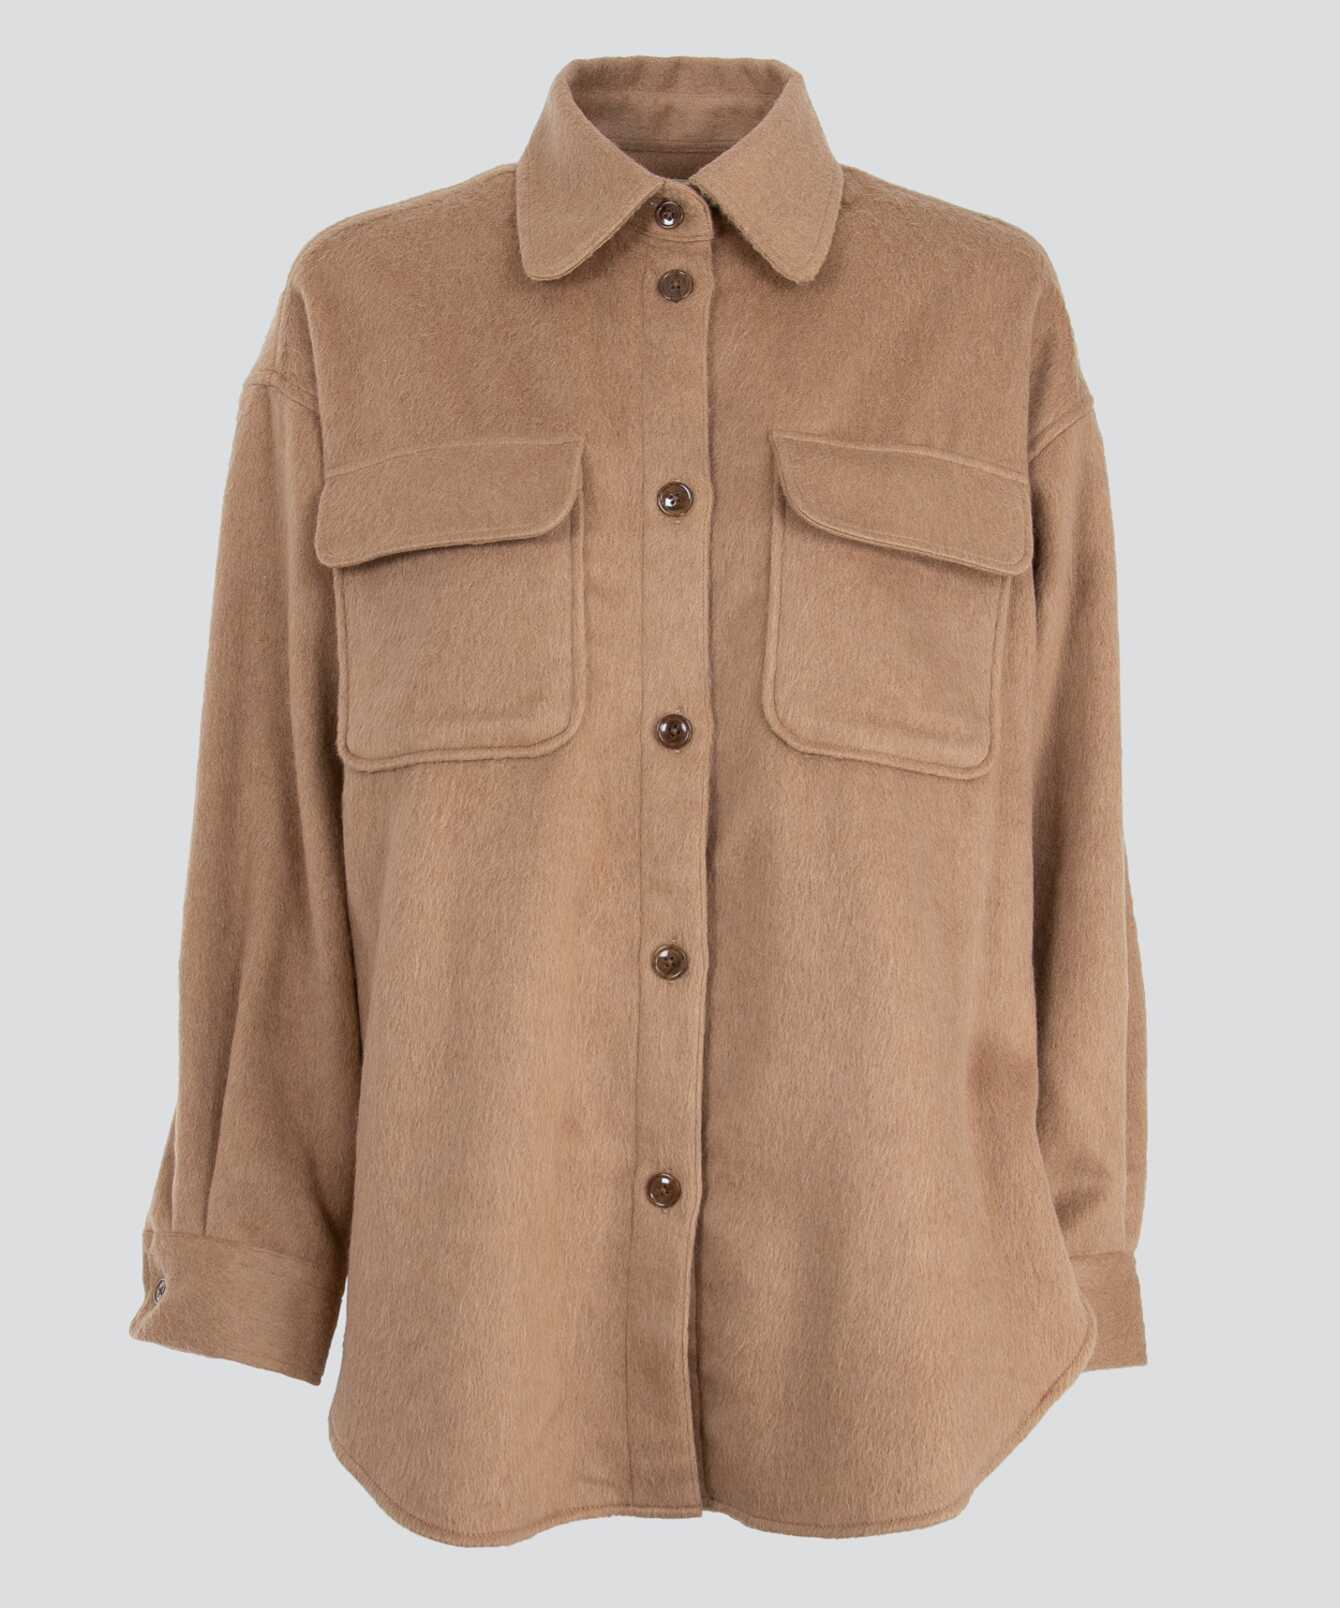 Shirt Holly Flanell Beige The Shirt Factory